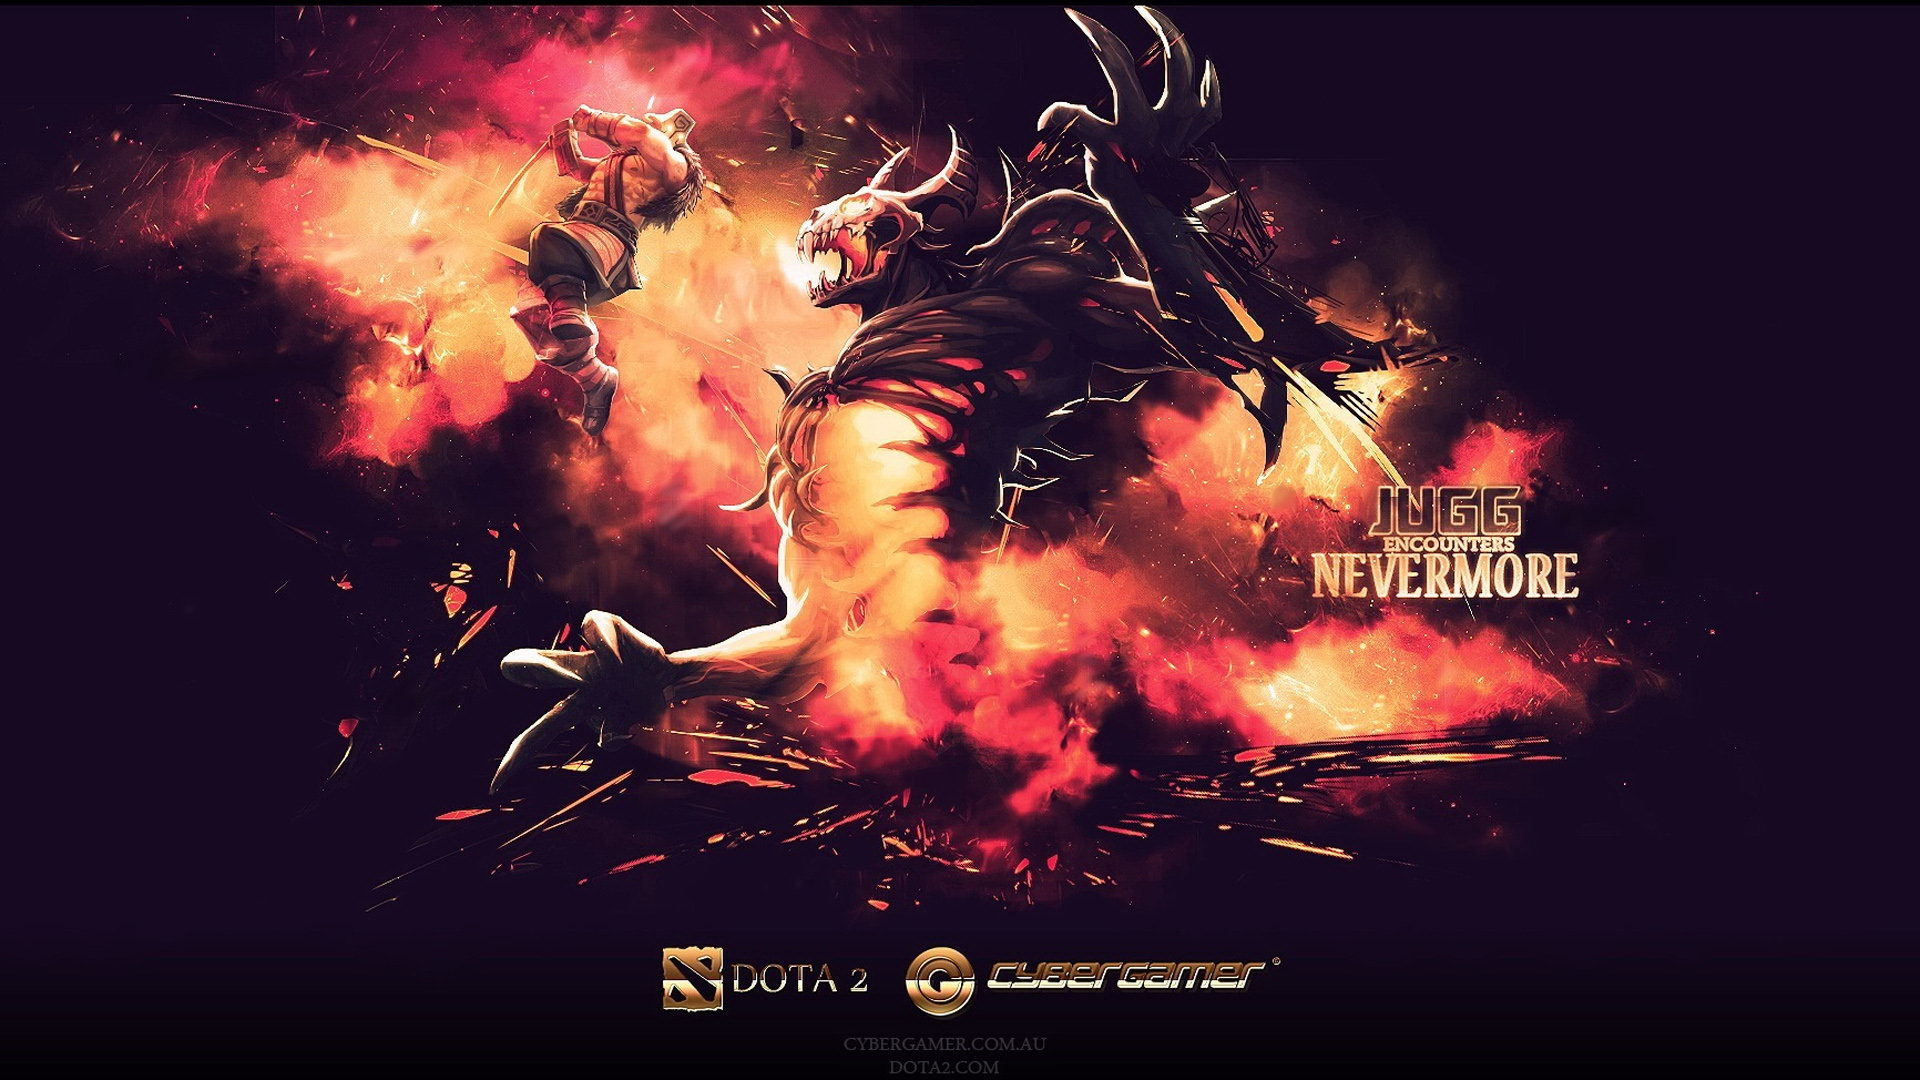 pics photos dota 2 wallpaper hd for pc wallpaper